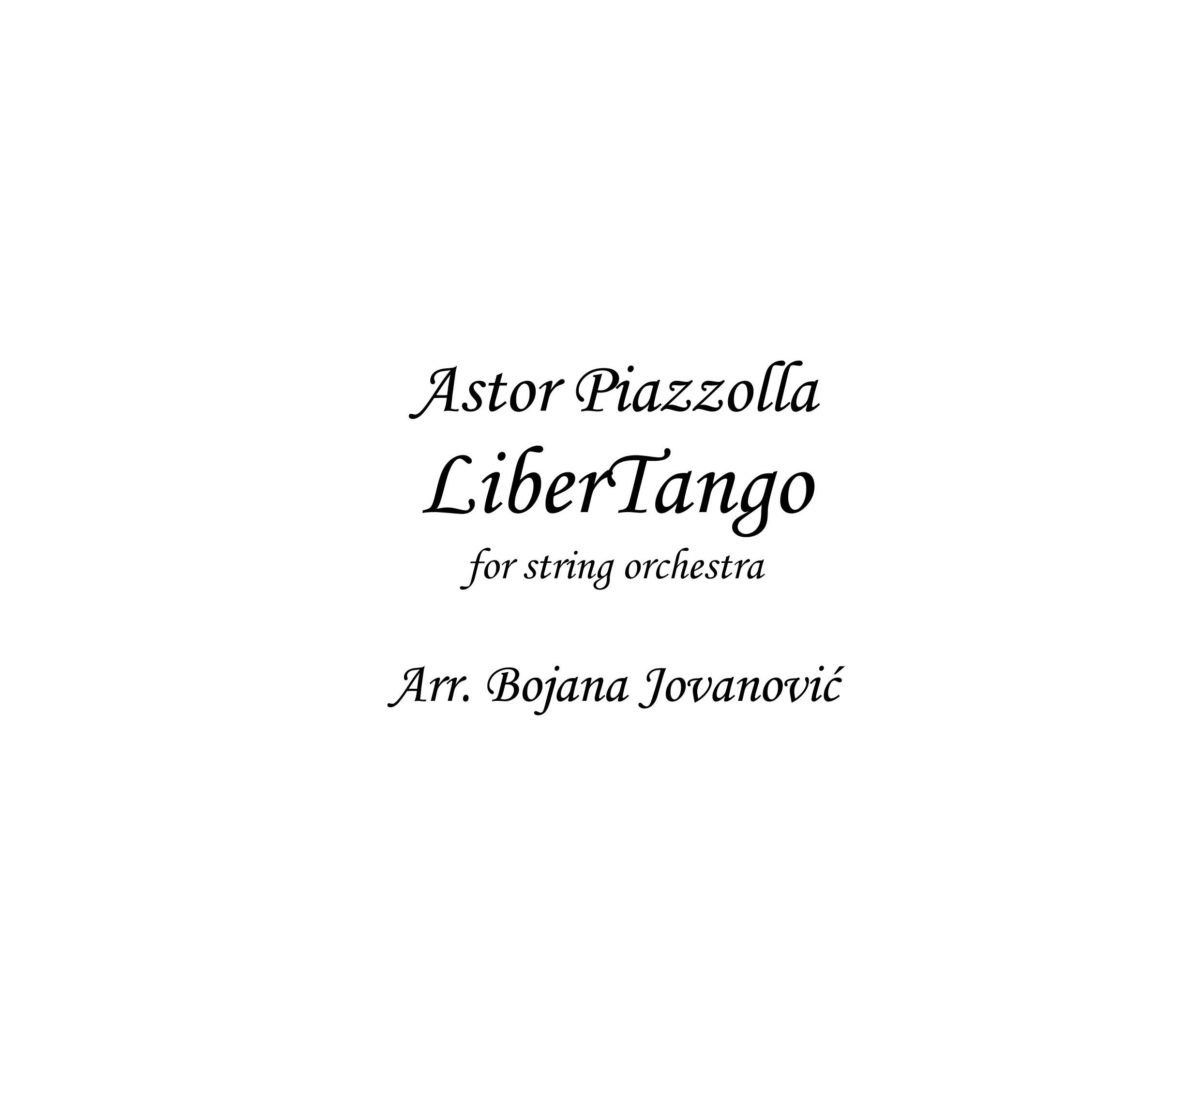 Libertango (Astor Piazzolla) - Sheet music for String Orchestra